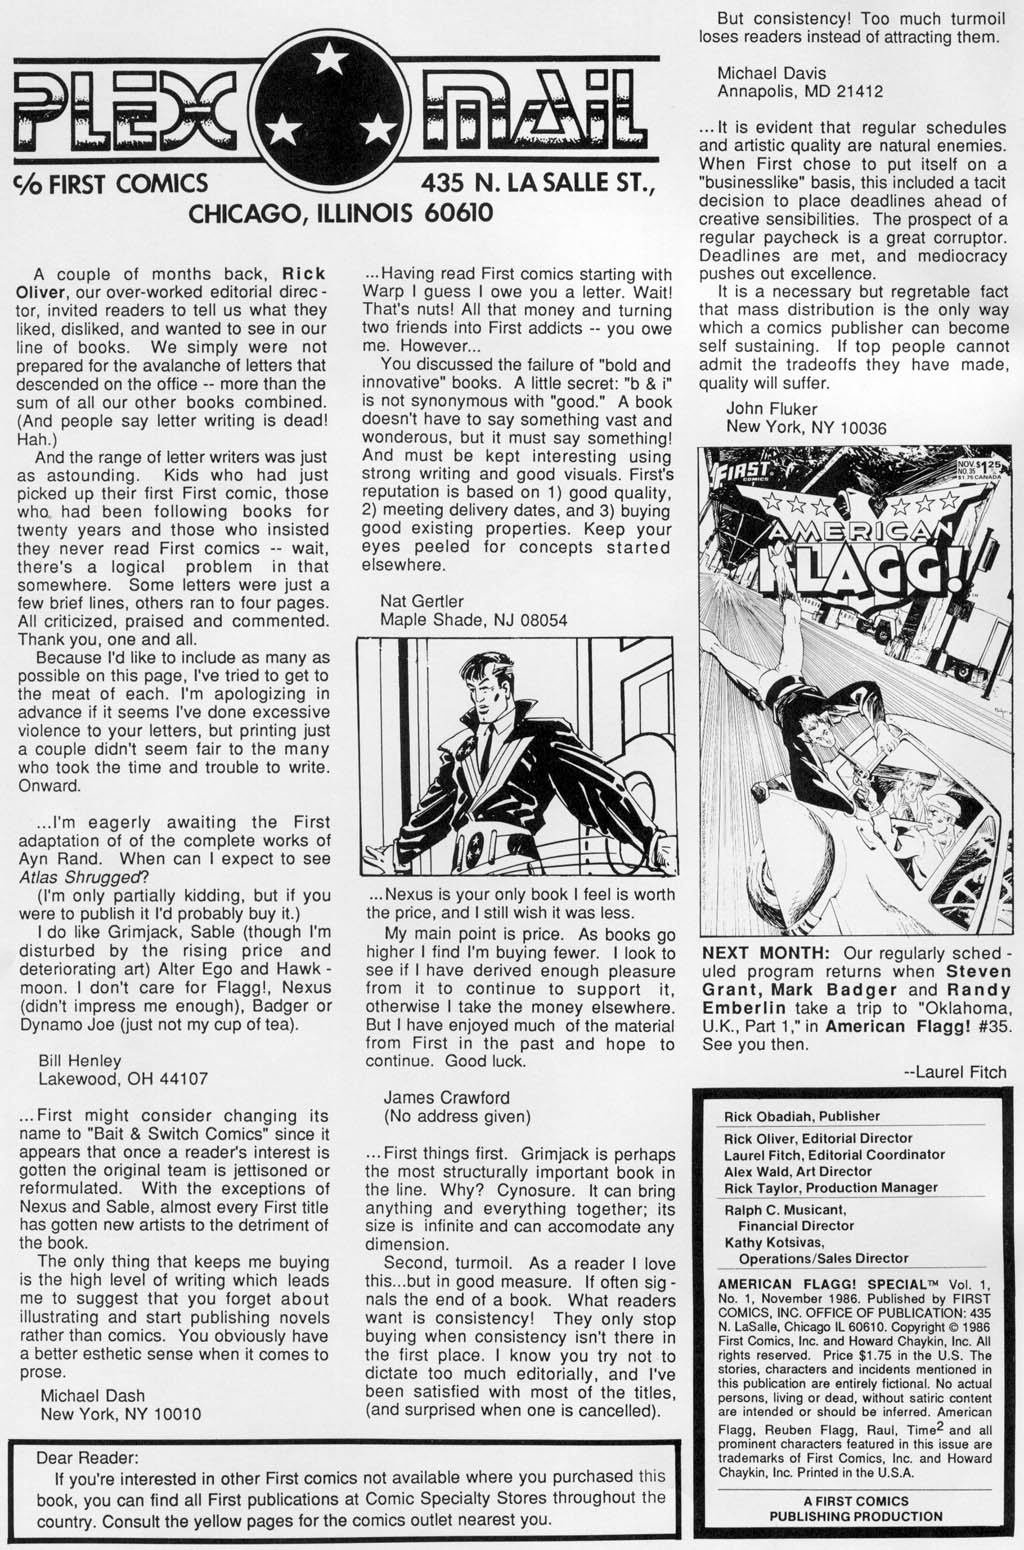 American Flagg! _Special_1 Page 1